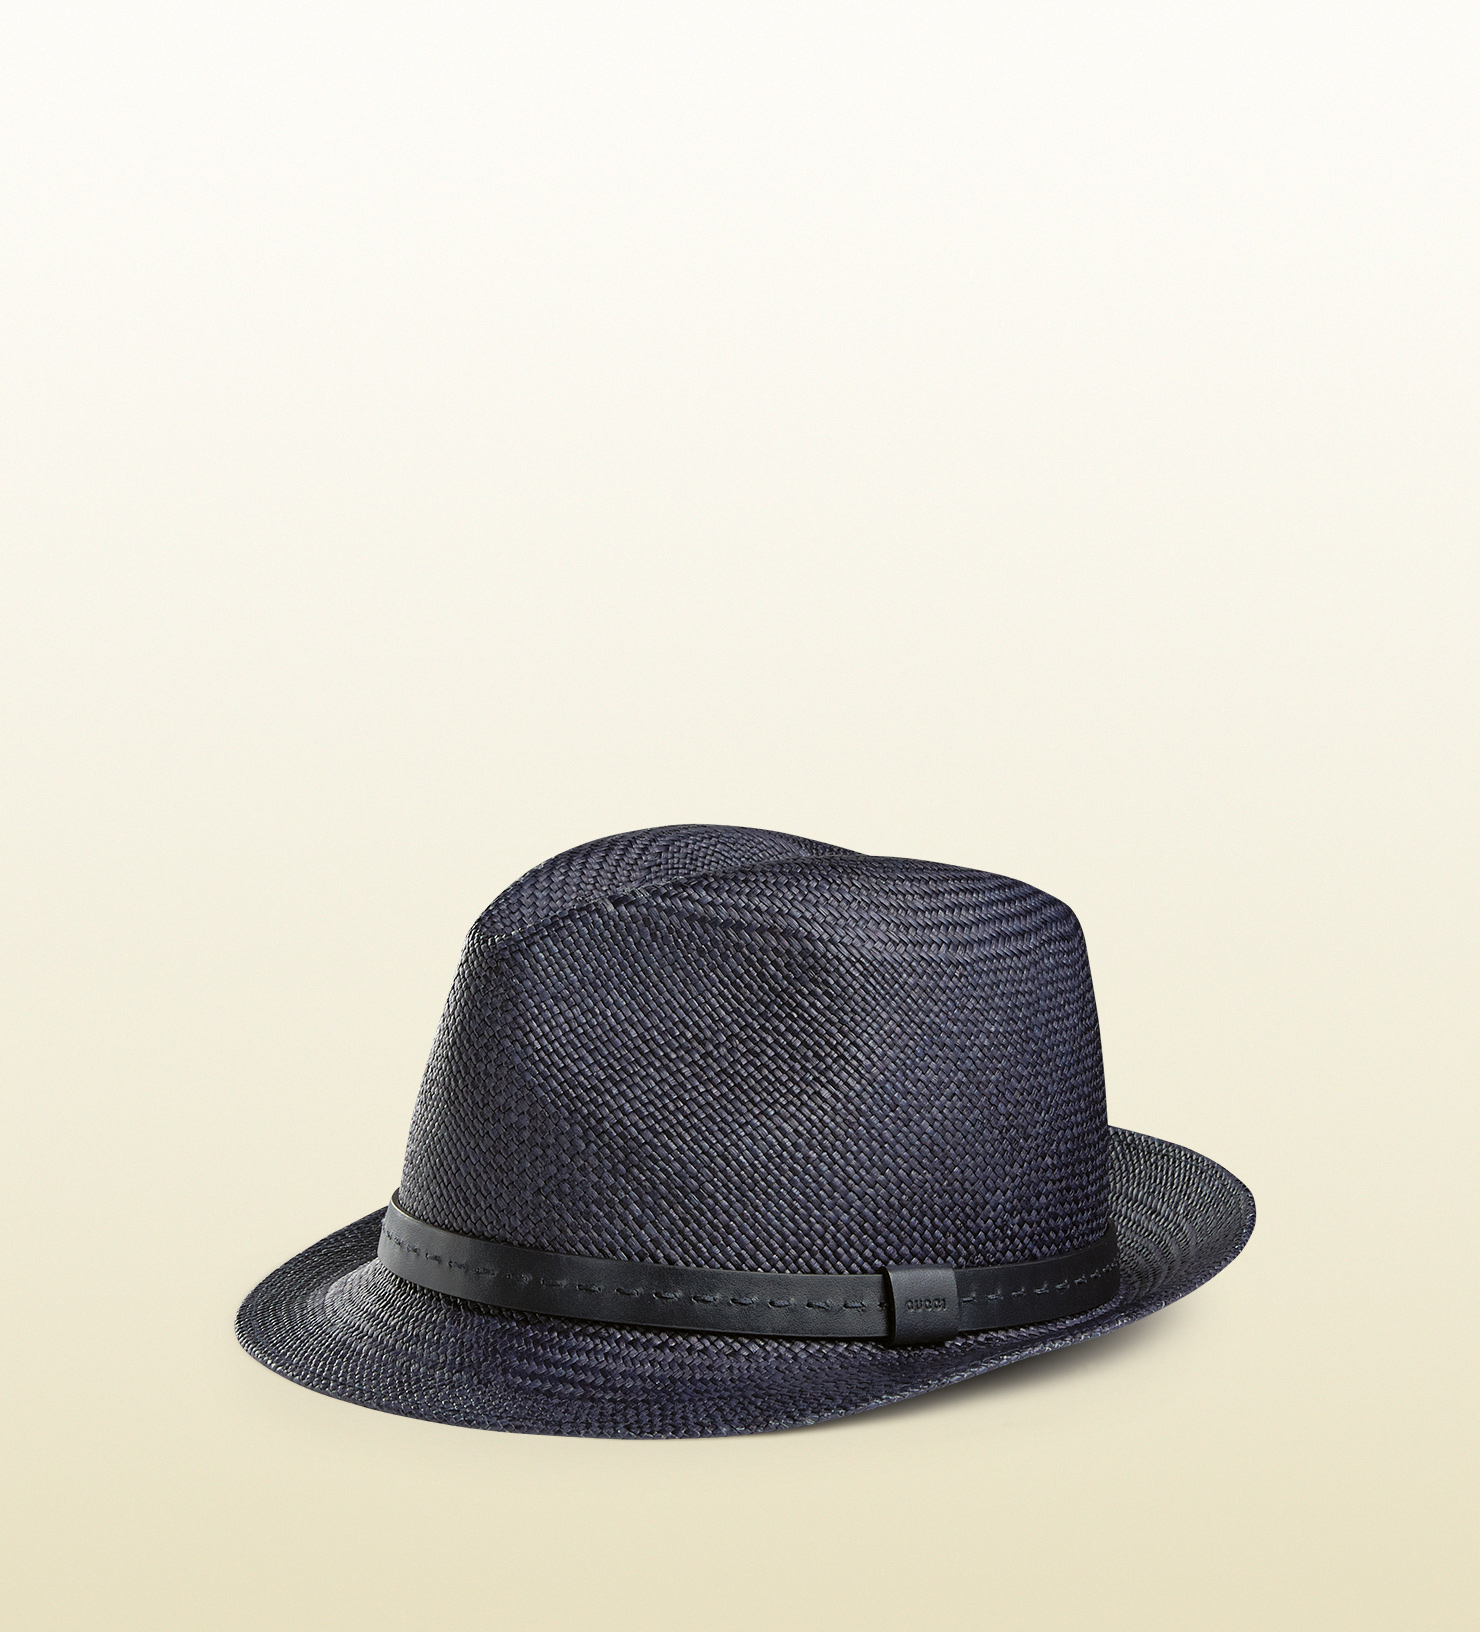 4ba4dcb55c0 Lyst - Gucci Straw Fedora With Leather Band in Blue for Men